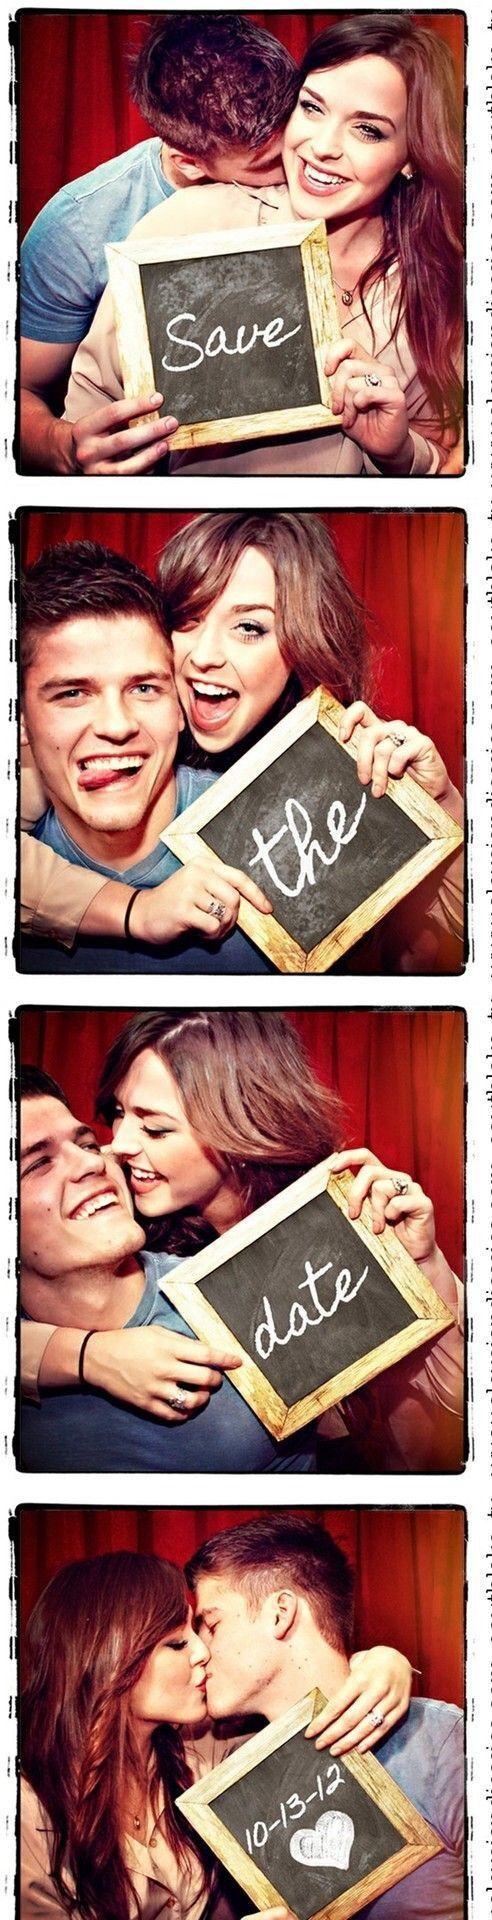 Ideas para save the date con divertidas secuencias de fotos estilo photobooth